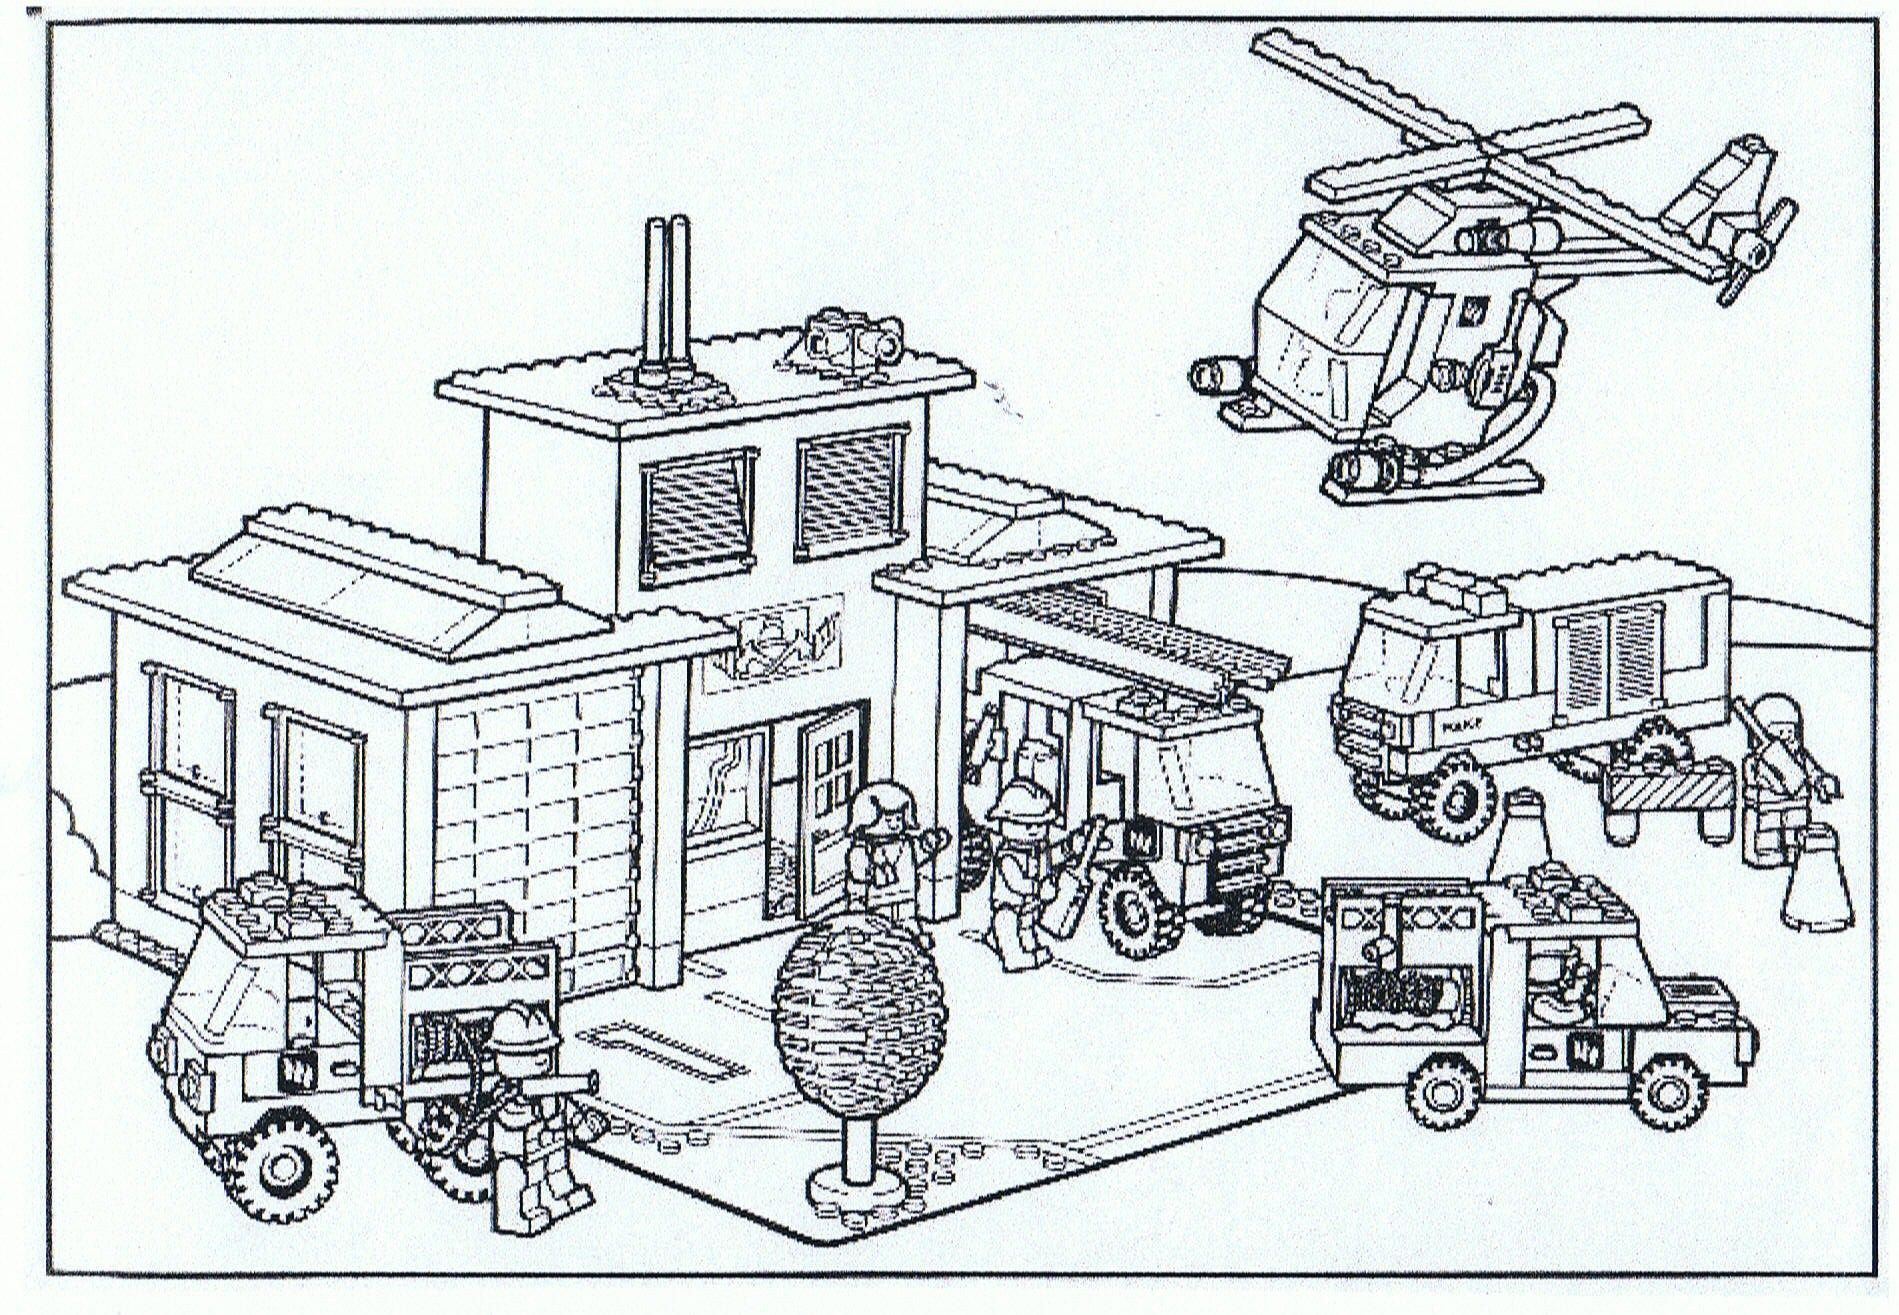 Pin By Arek On Dokter Logo 3000 4 Lego Coloring Pages Lego Coloring Lego Police Station